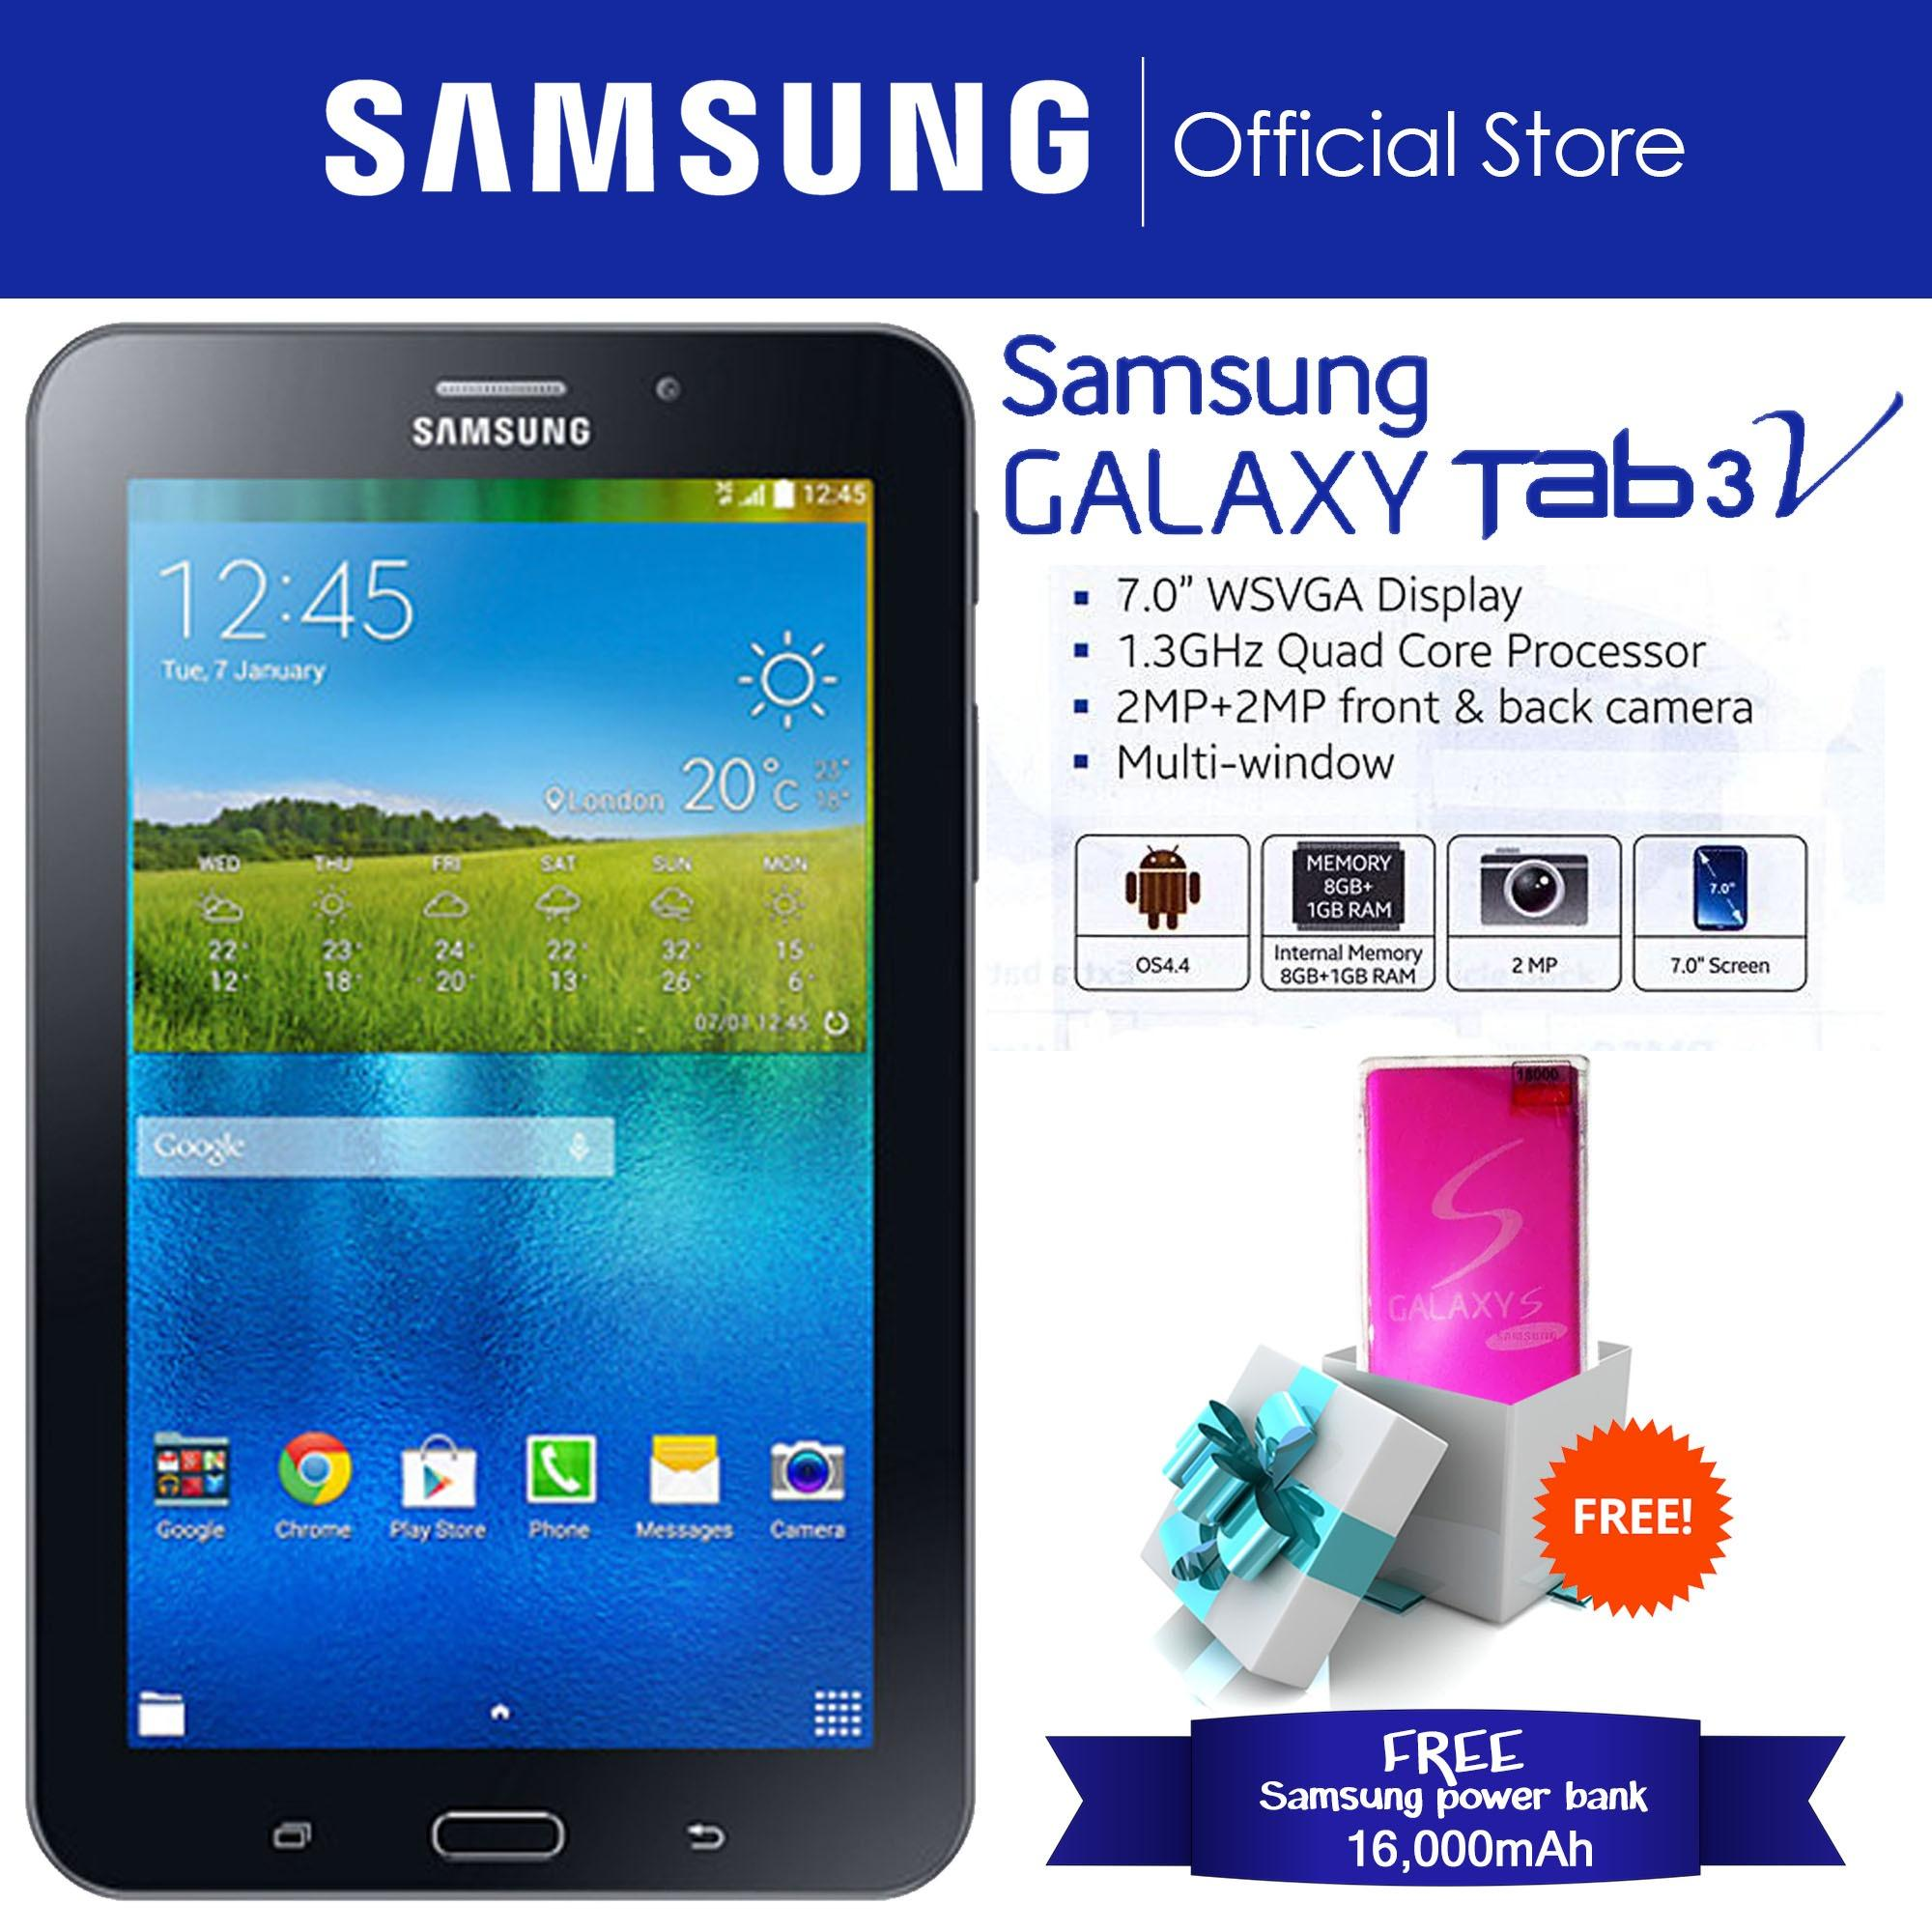 "Samsung Galaxy Tab 3V 8GB 7 0"" Ebony Black Free mAh Samsung Powerbank"